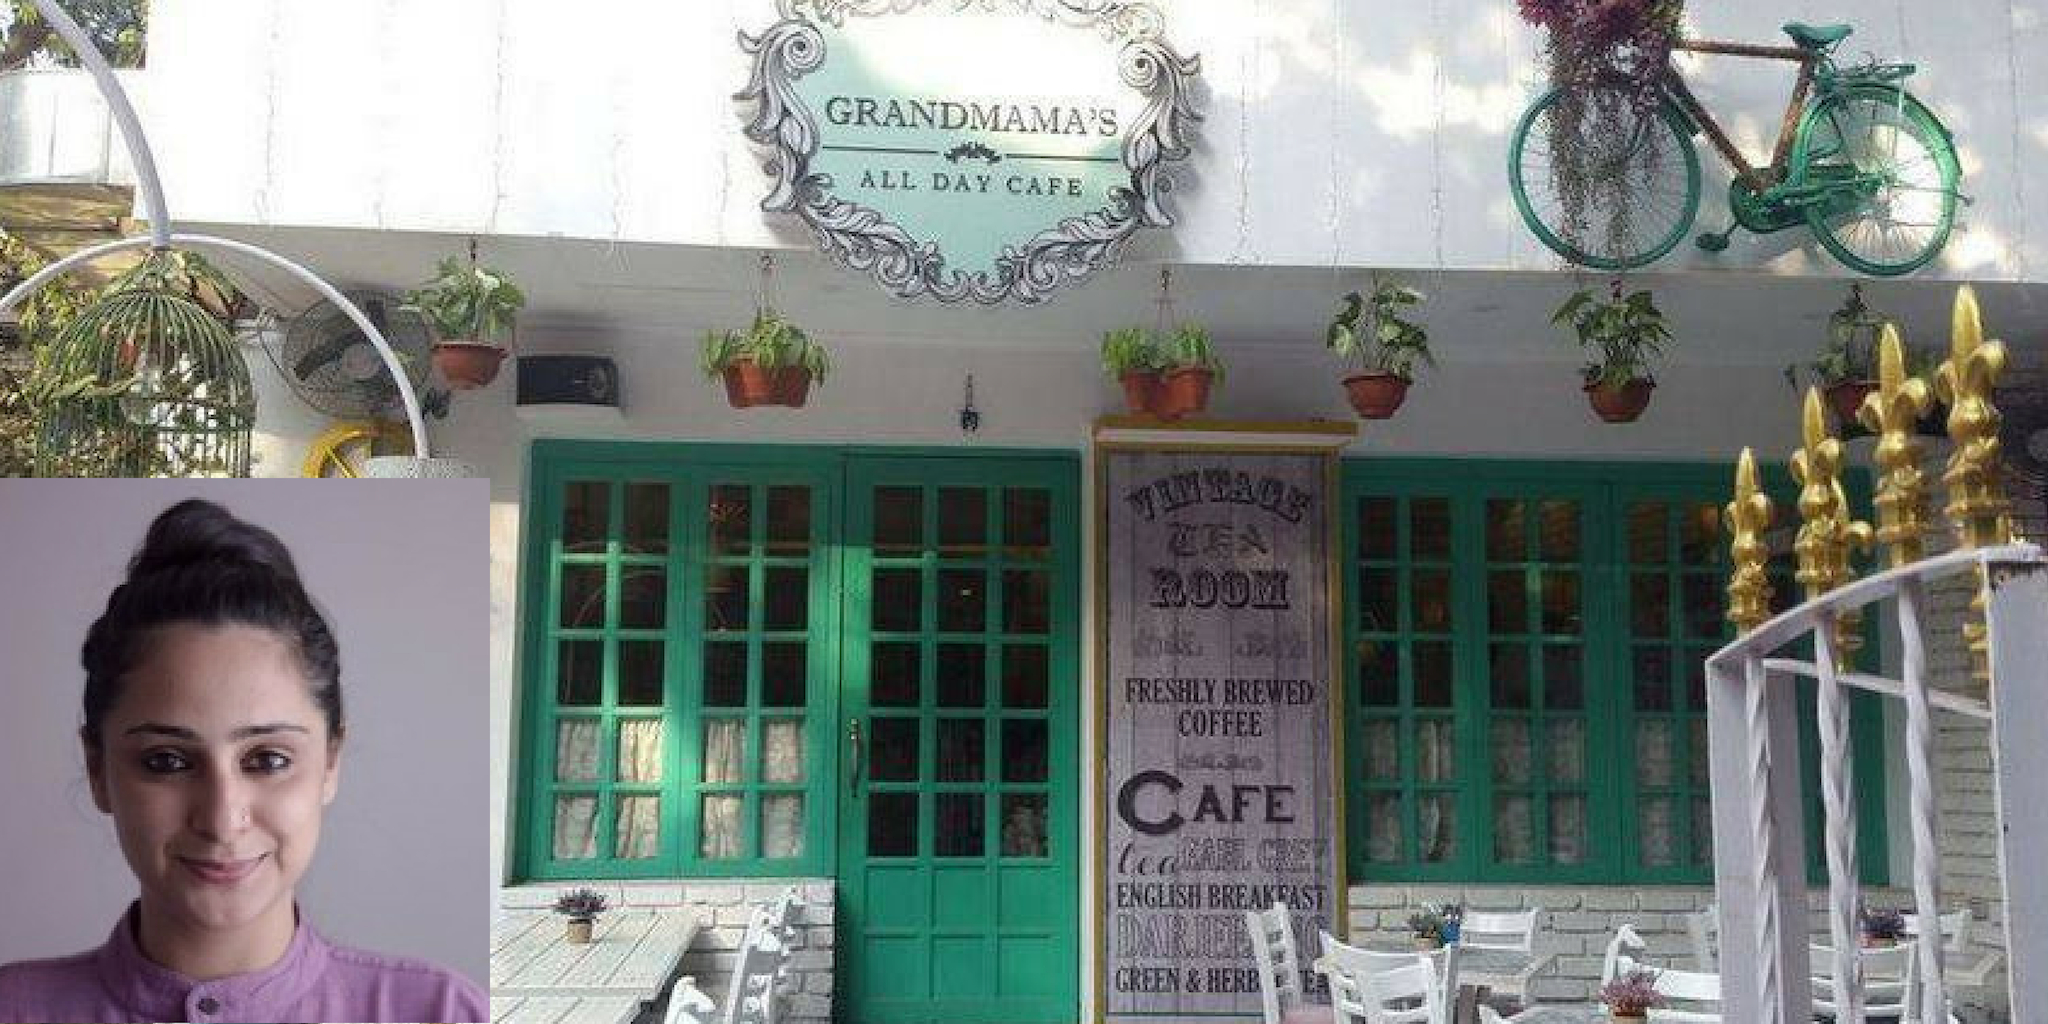 restaurants-run-by-women-grandmama's-cafe_image